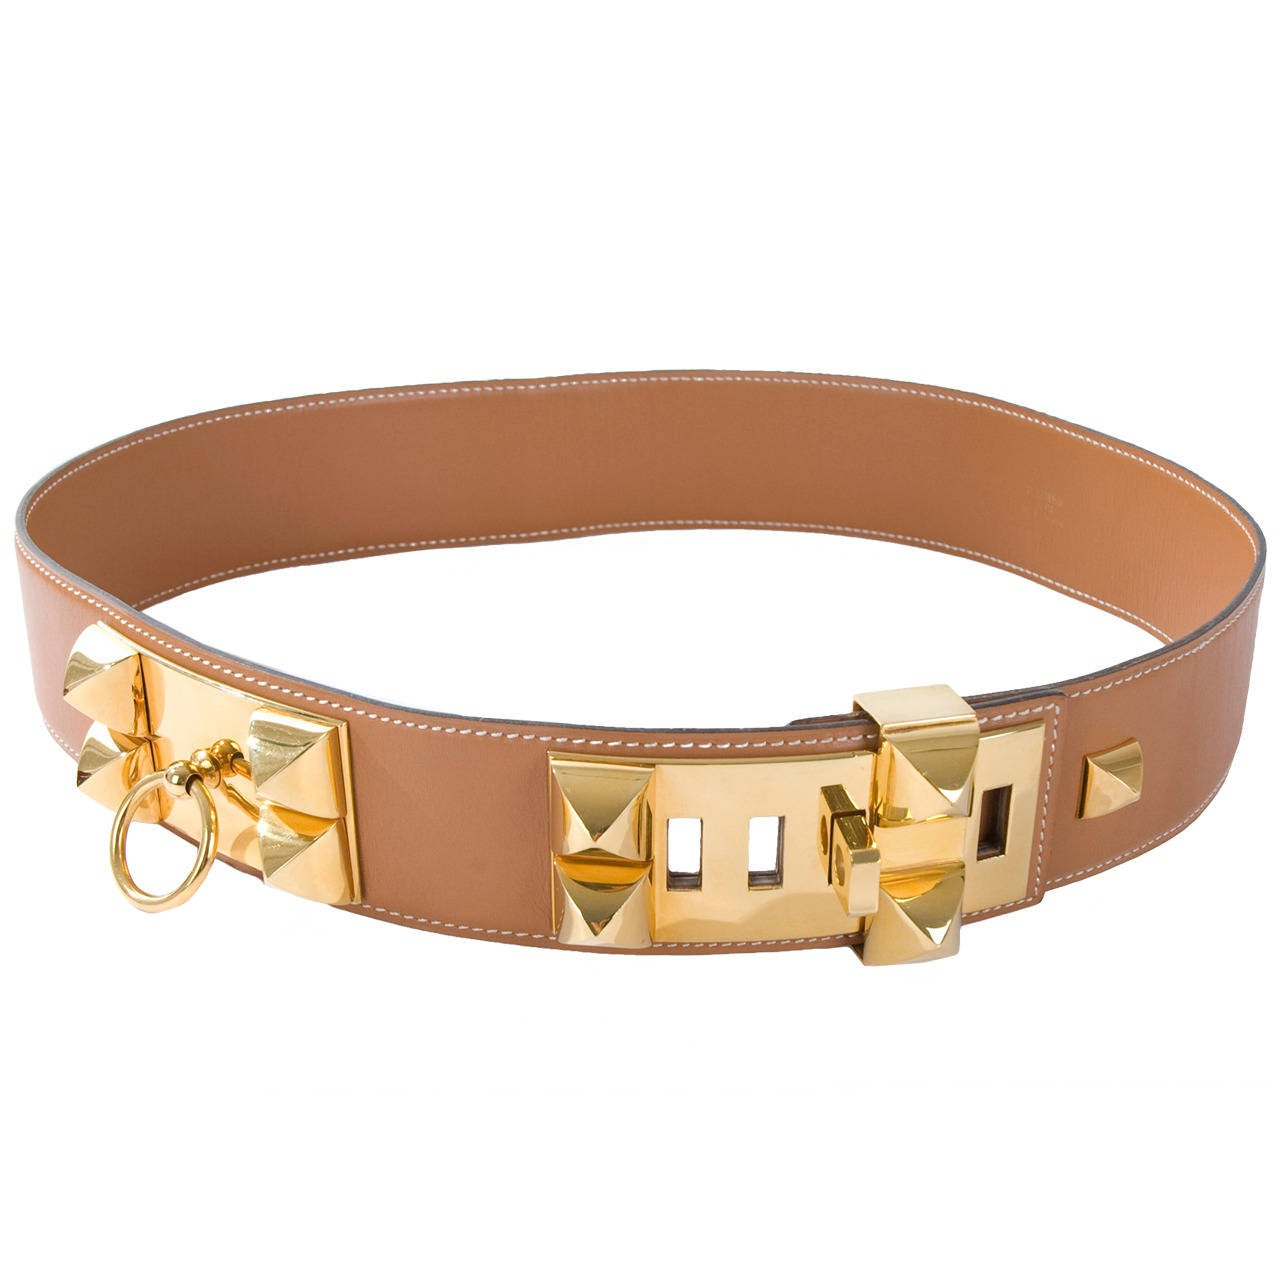 1987 Camel Hermès Collier De Chien Leather Belt For Sale. Harley Wedding Rings. Rold Gold Chains. Chanel Anklet. 1 Carat Rings. Pointer Diamond. 3 Diamond Anniversary Band. Morganite Gemstone. Named Rings